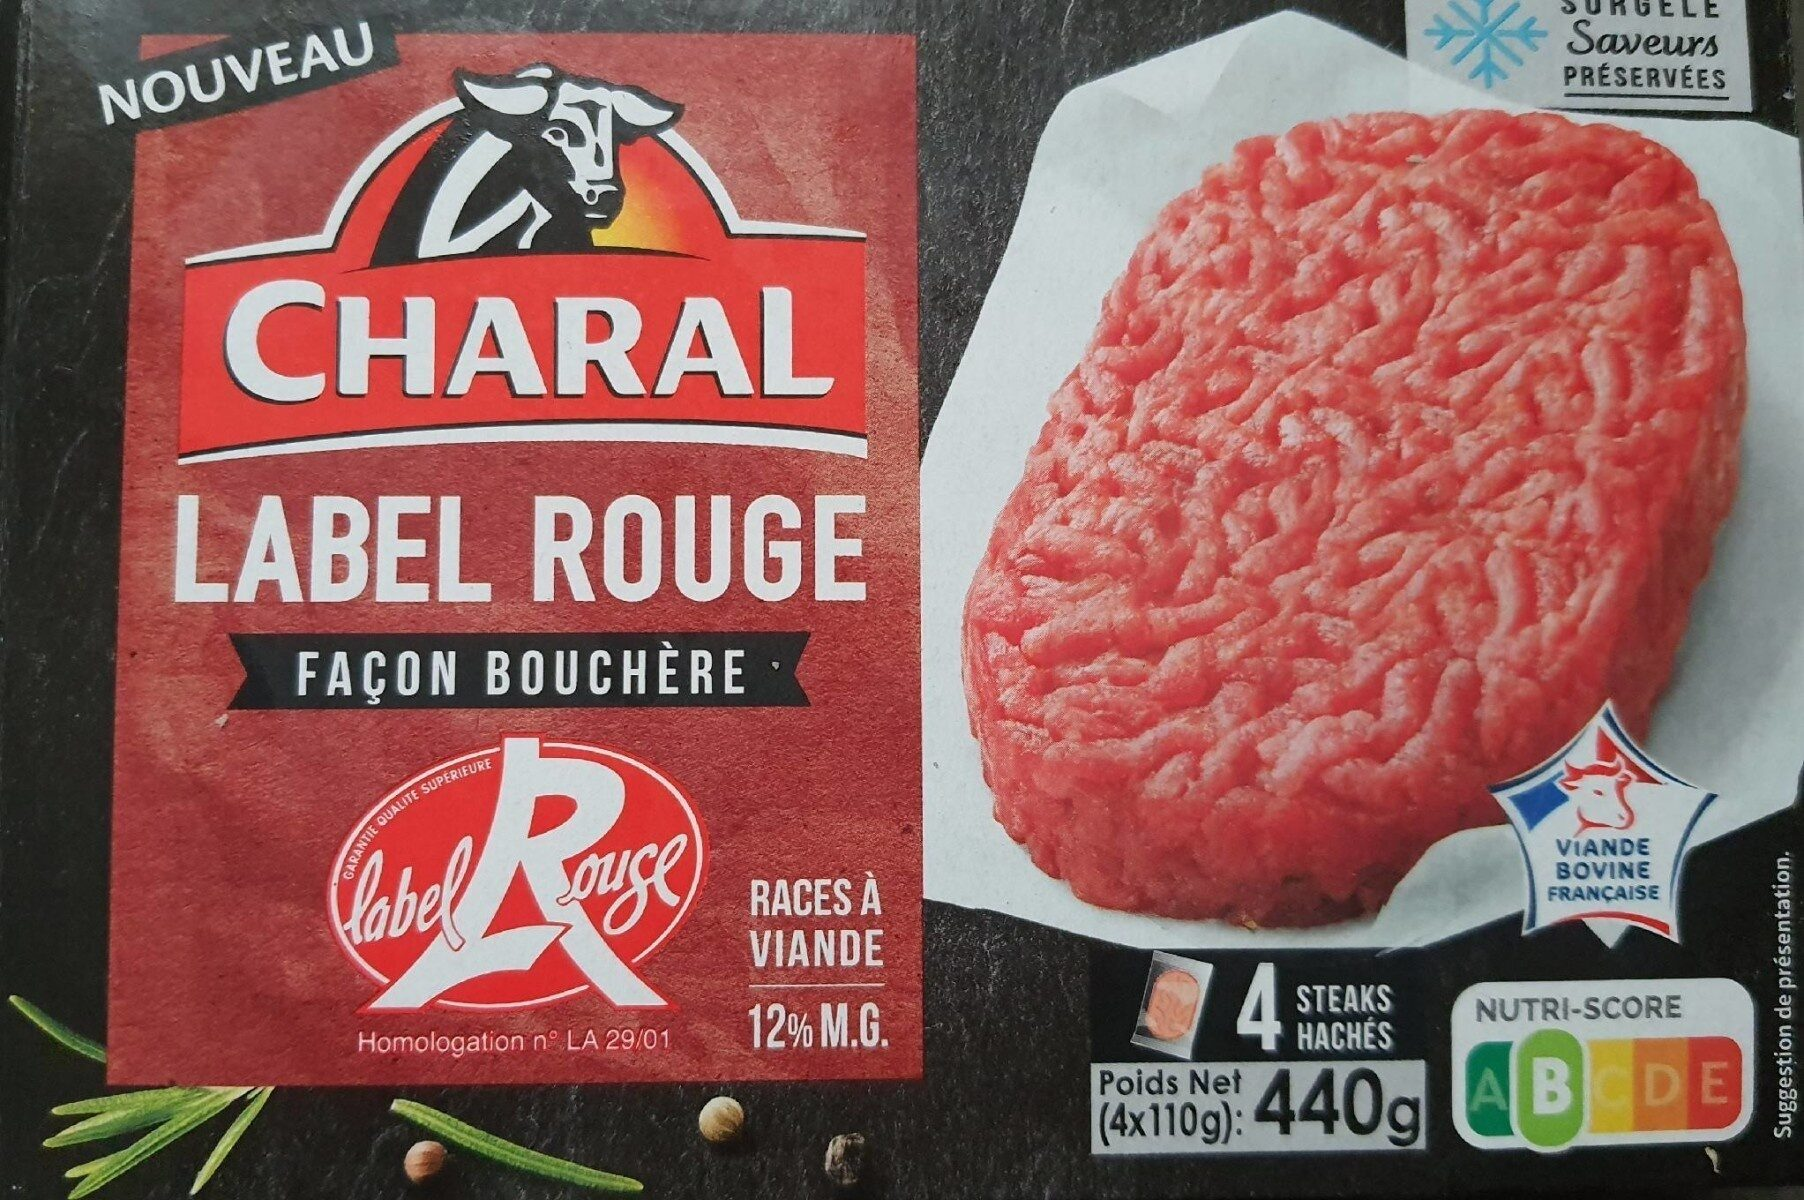 Charal label rouge